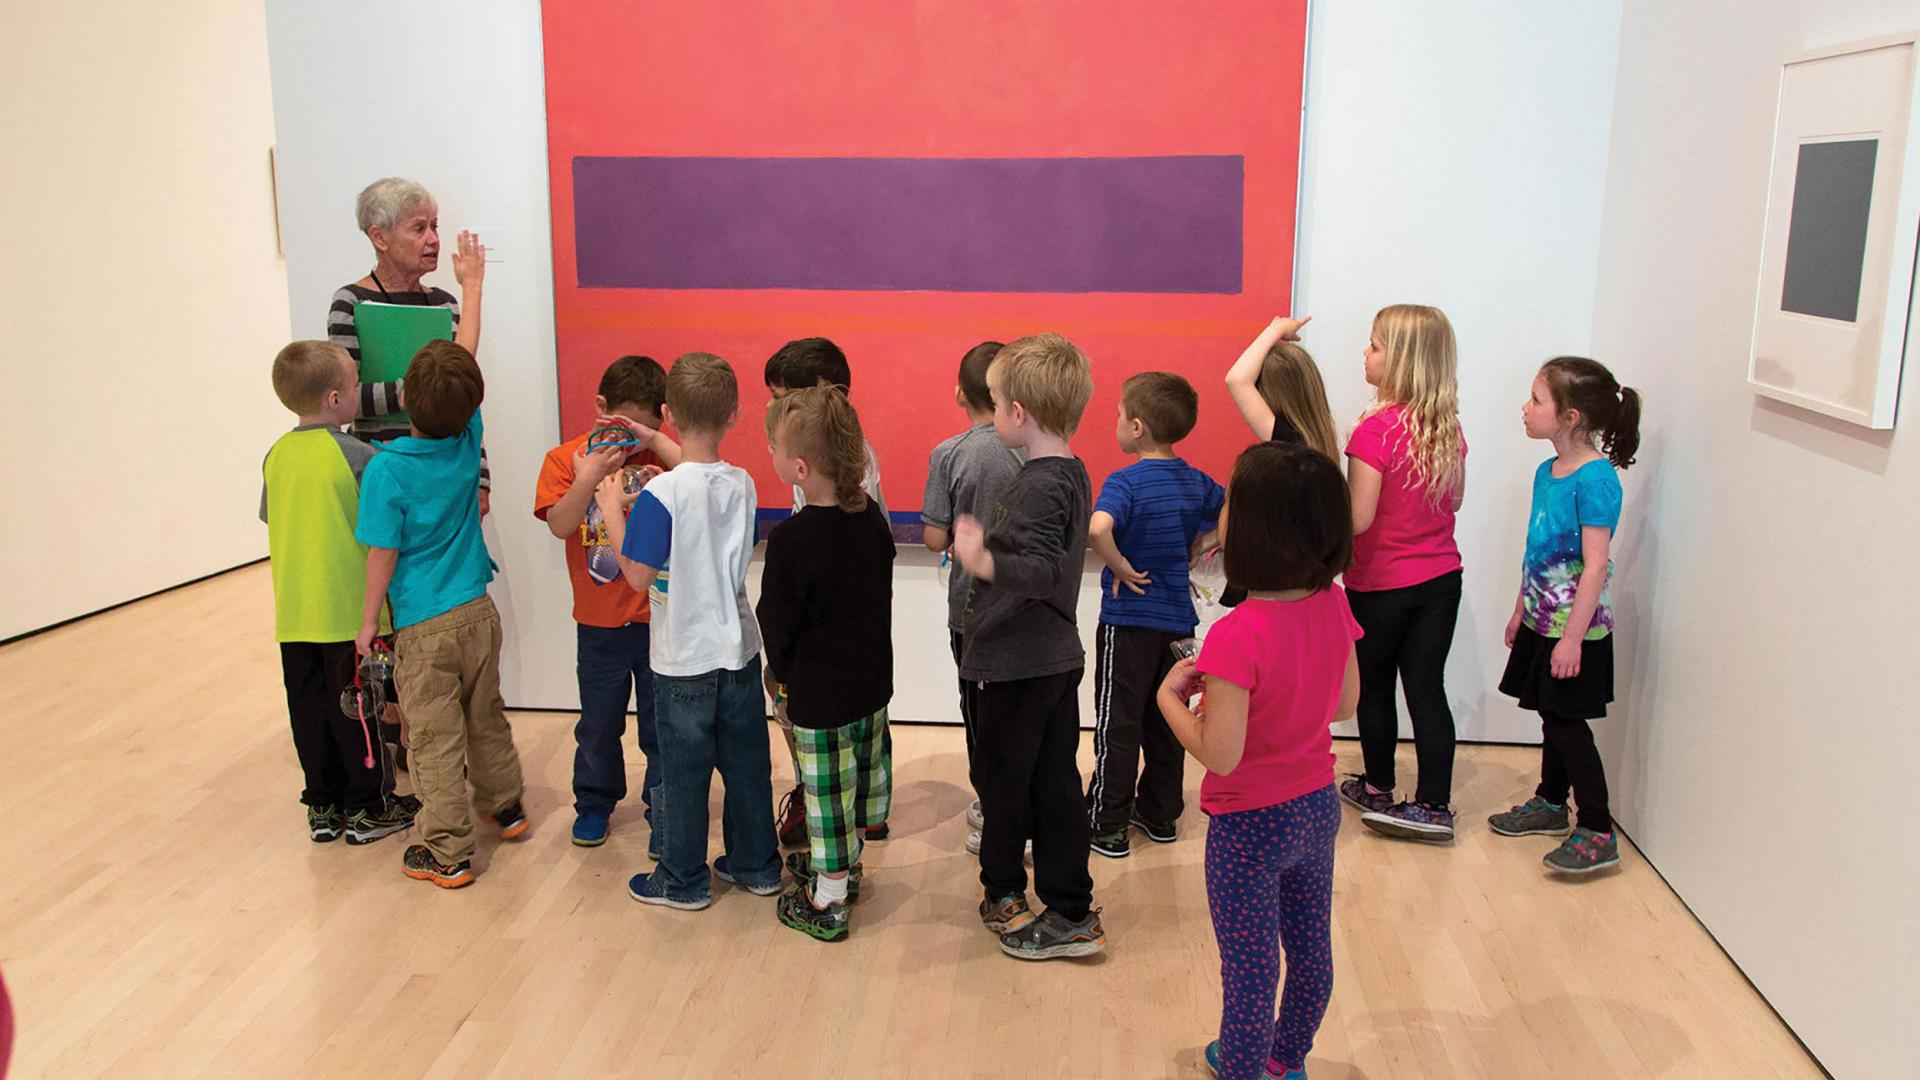 Children getting a tour of an art gallery